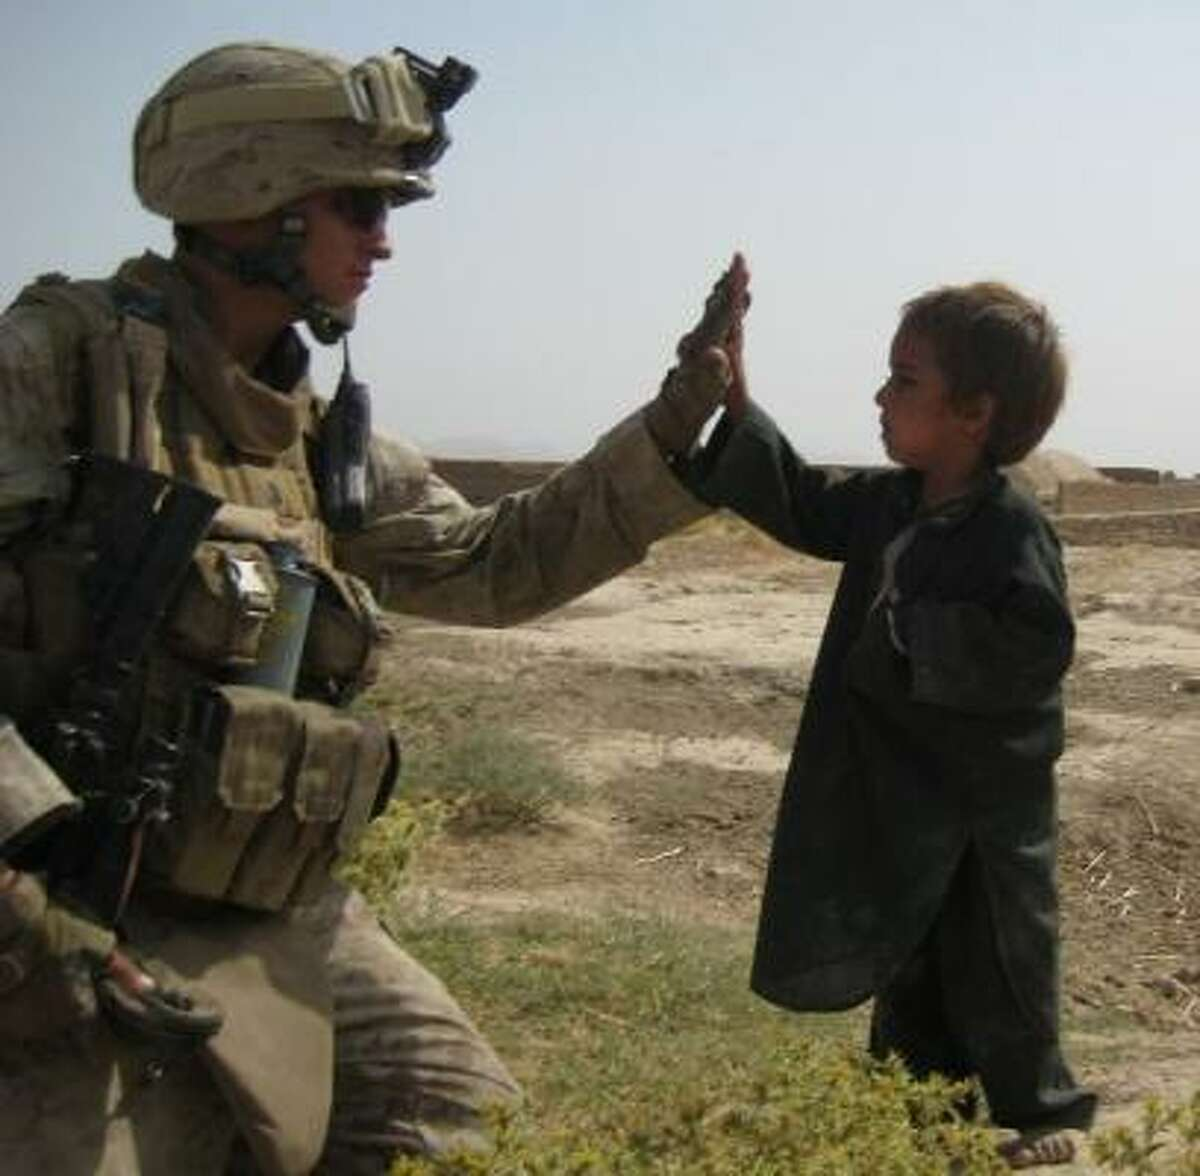 My son, Sgt. William W. Rollins, while deployed in Afghanistan. He said the little guy had a lot to say but he didn't understand a word, but was glad he was there to listen and making a better place to live for these children. - Barbara Rollins For more information on the KSBJ